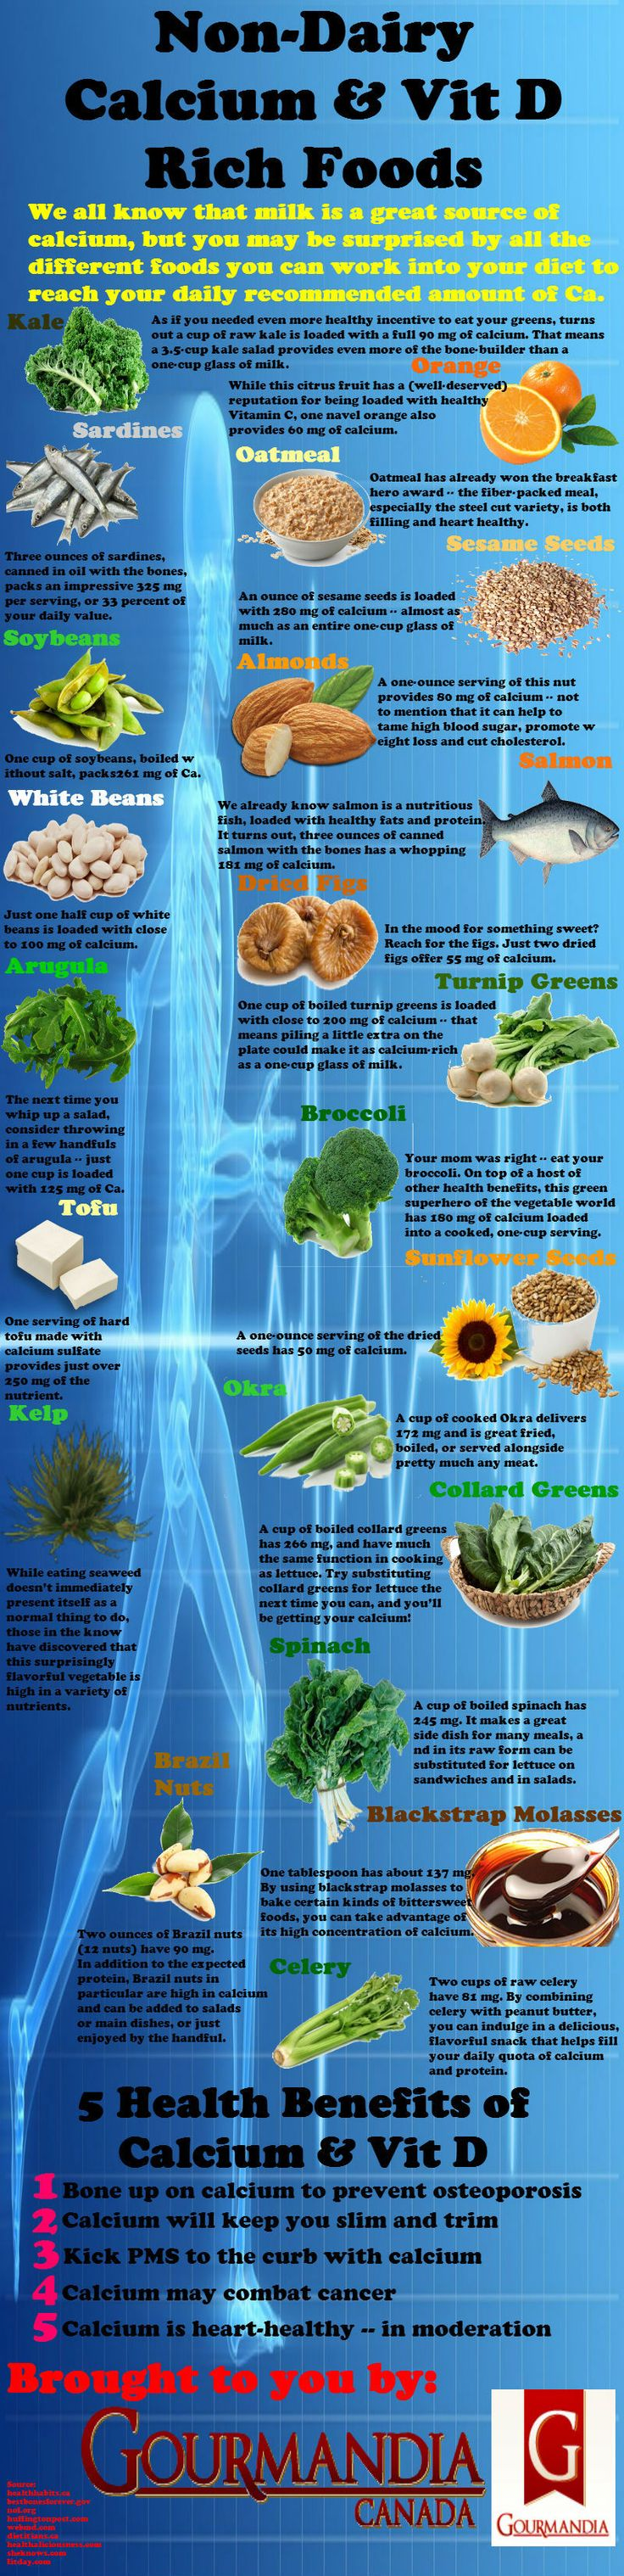 When most people think of foods high in calcium, they usually think of milk, yogurt and cheese - all the dairy products. However, many of you many not